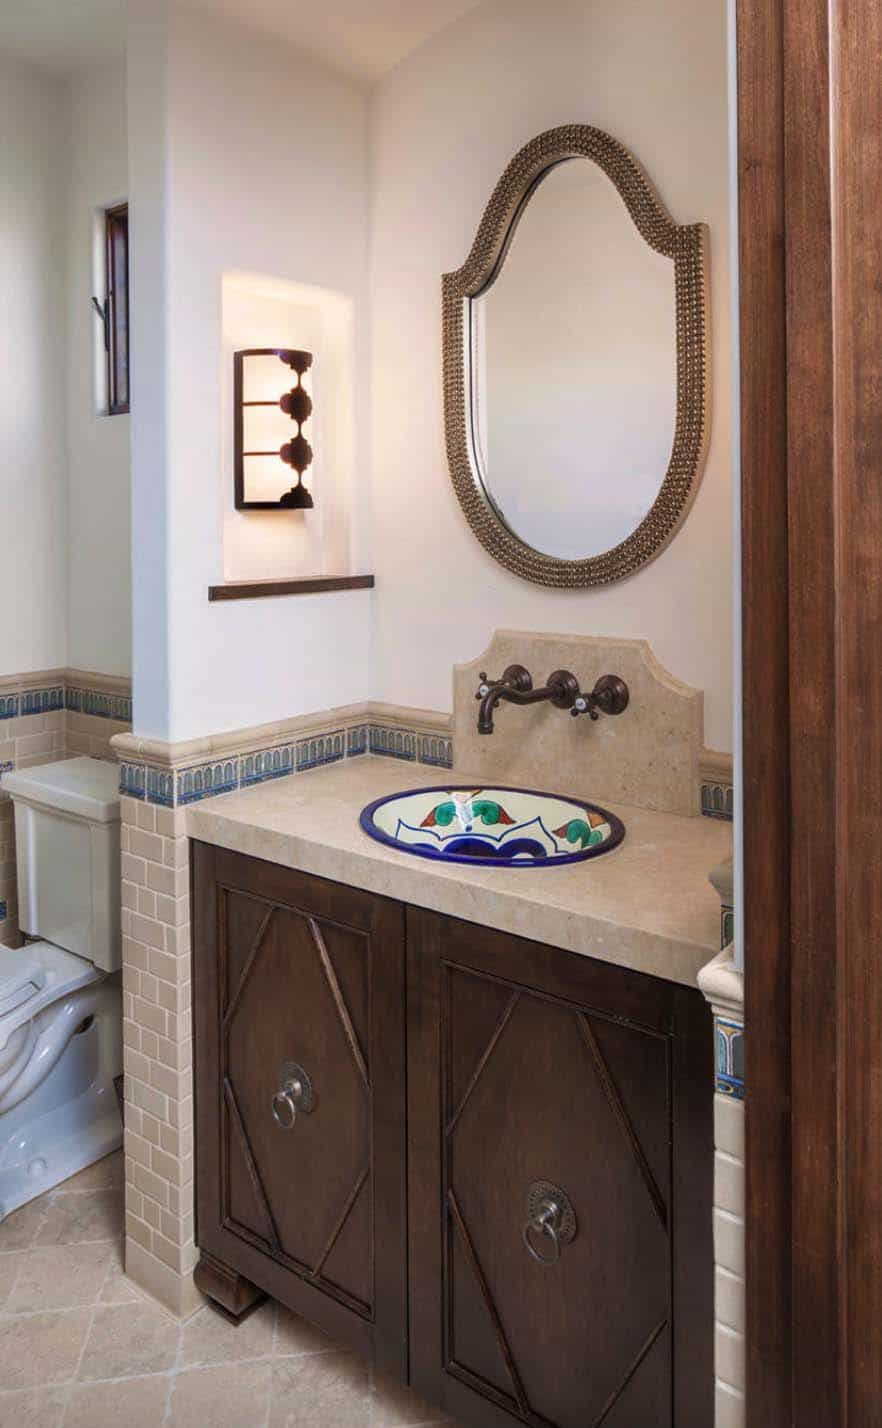 There are small bursts of color in every section of the house, including the bathrooms which have beautiful washbasins